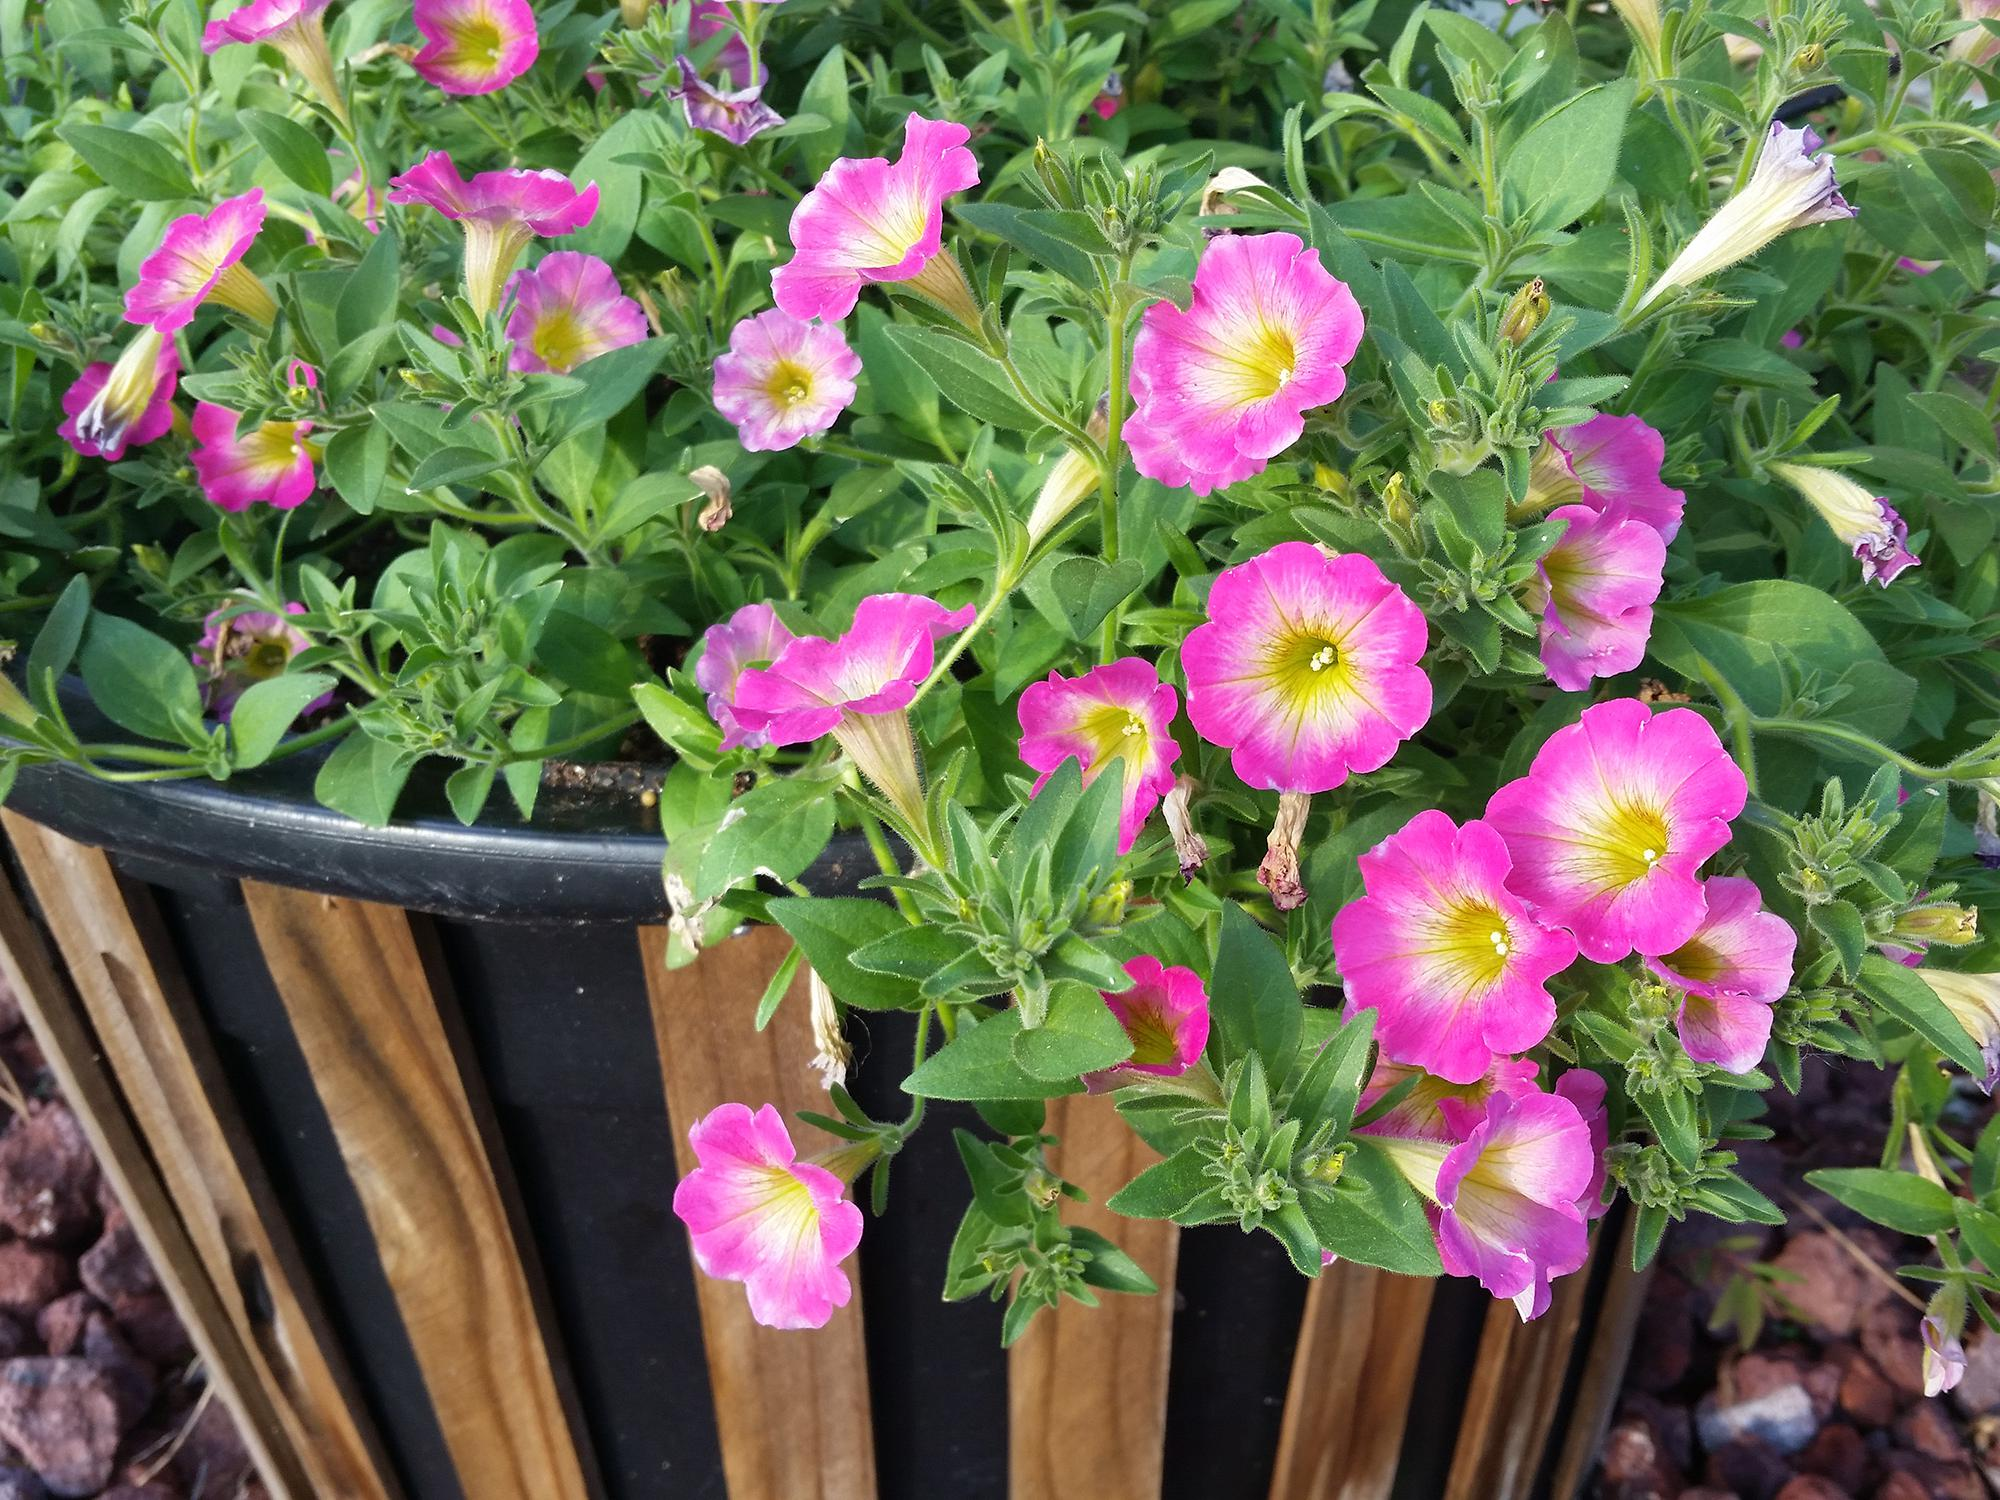 These Daybreak Charm Supertunias are thriving in a basic, 25-gallon container that has been dressed up with vertical wooden slats. (Photo by MSU Extension/Gary Bachman)